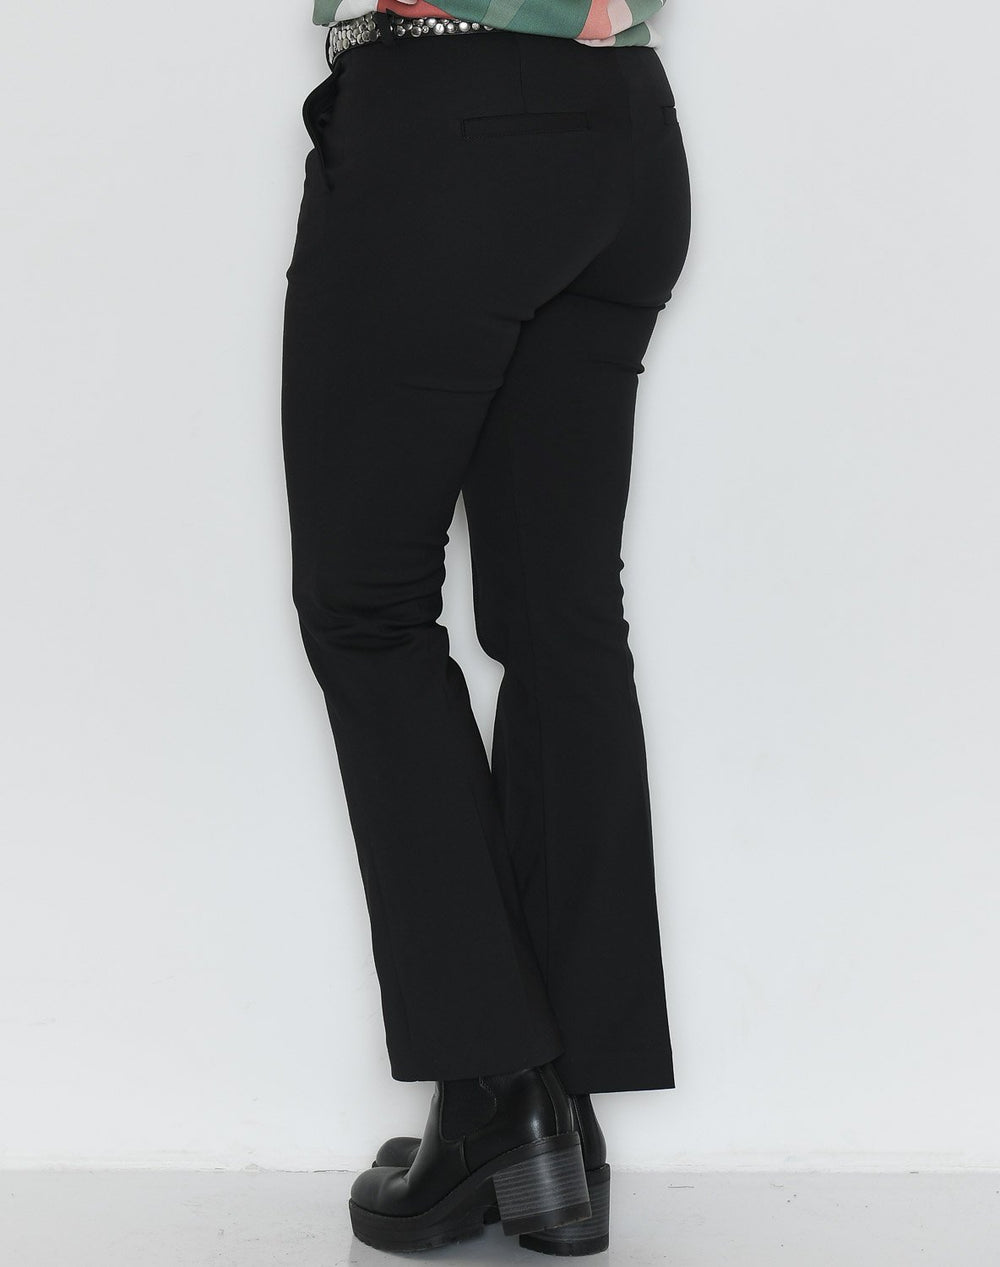 Dranella DRvigga 5 flared pants black - Online-Mode